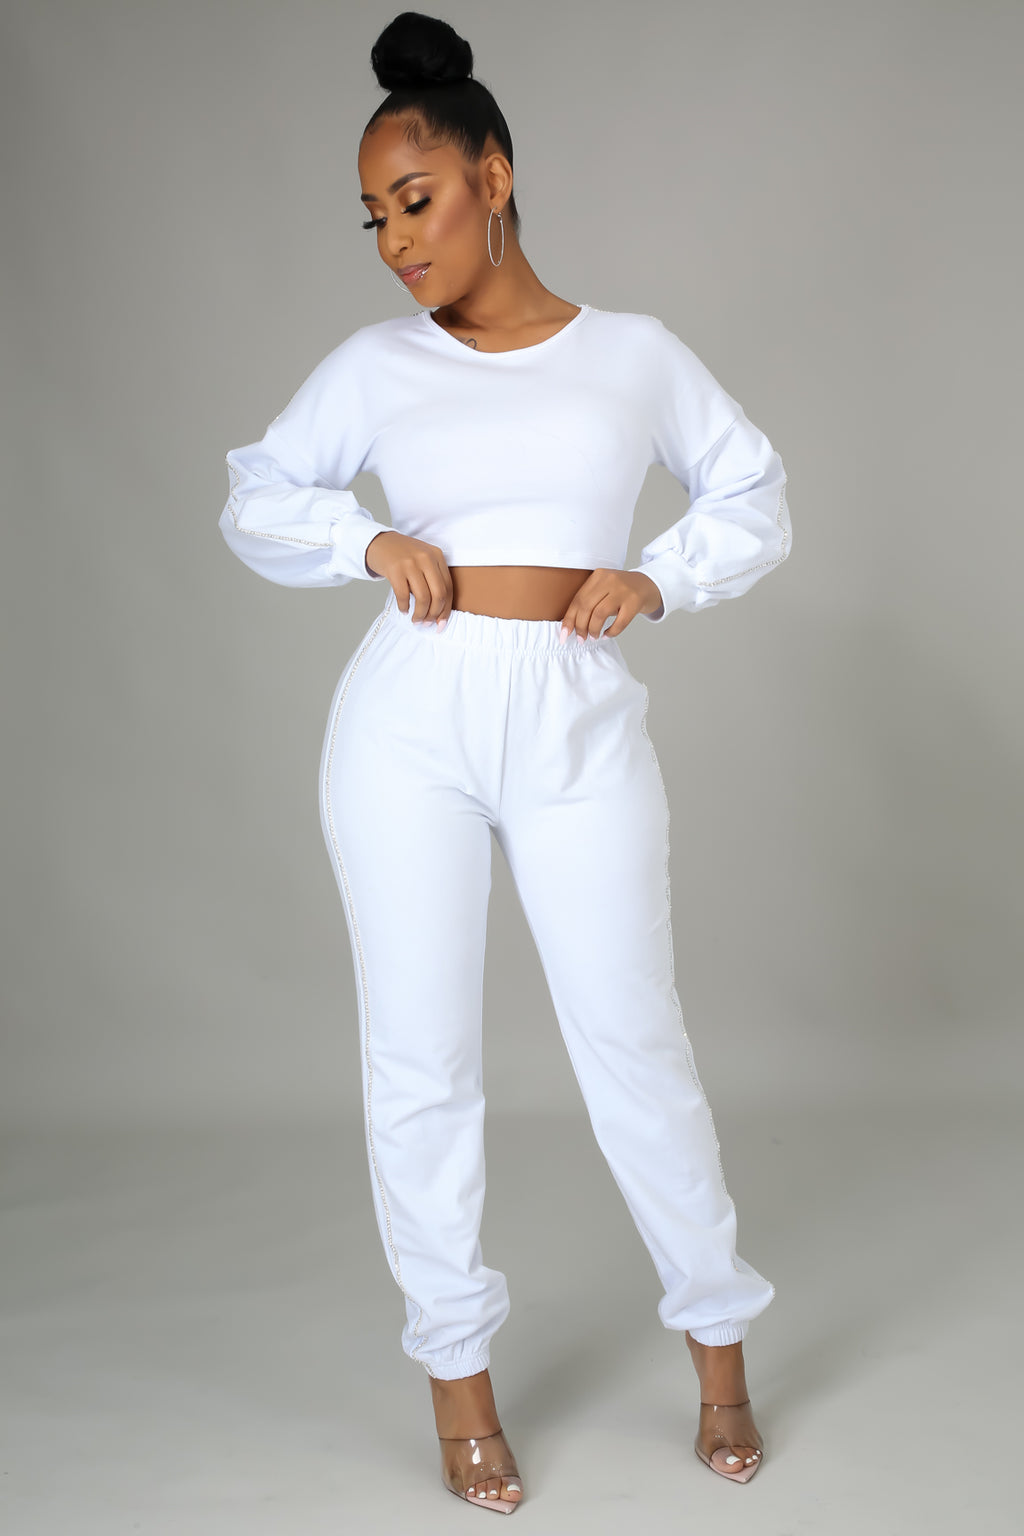 Sparkle Lounging Pant Set - Classy & Sassy Styles Boutique